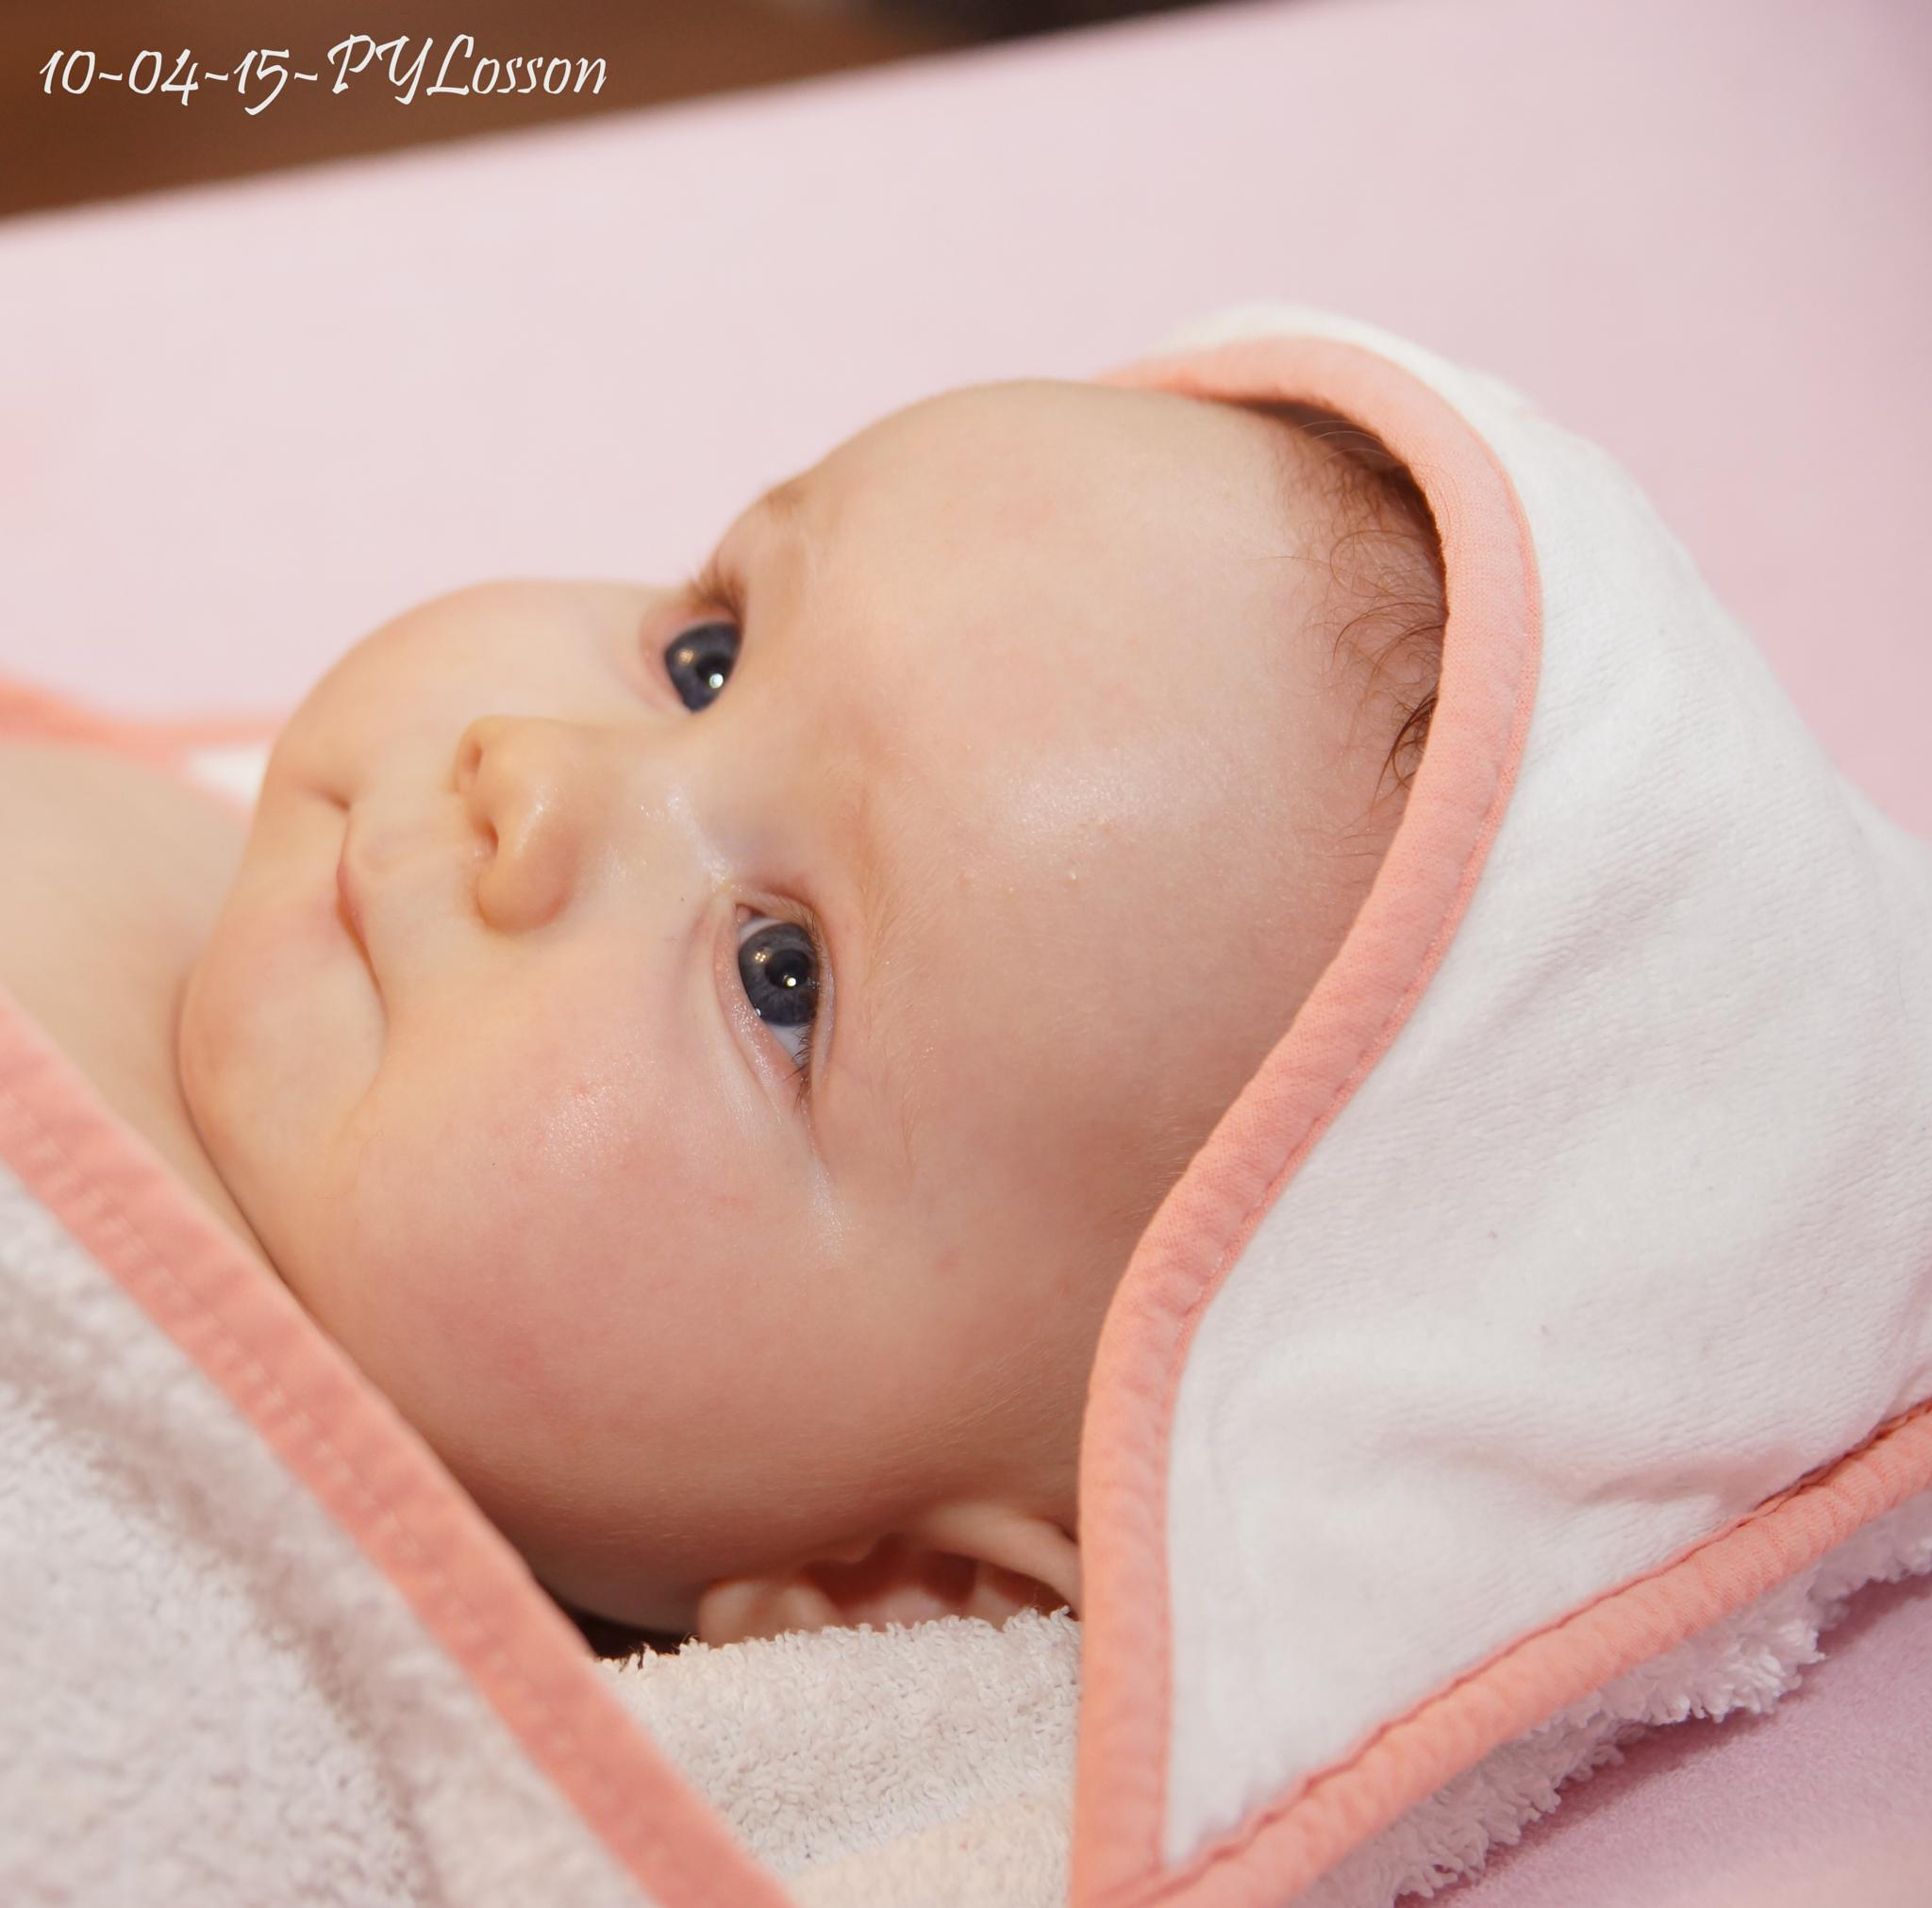 baby 2 by Pierre-Yves Losson